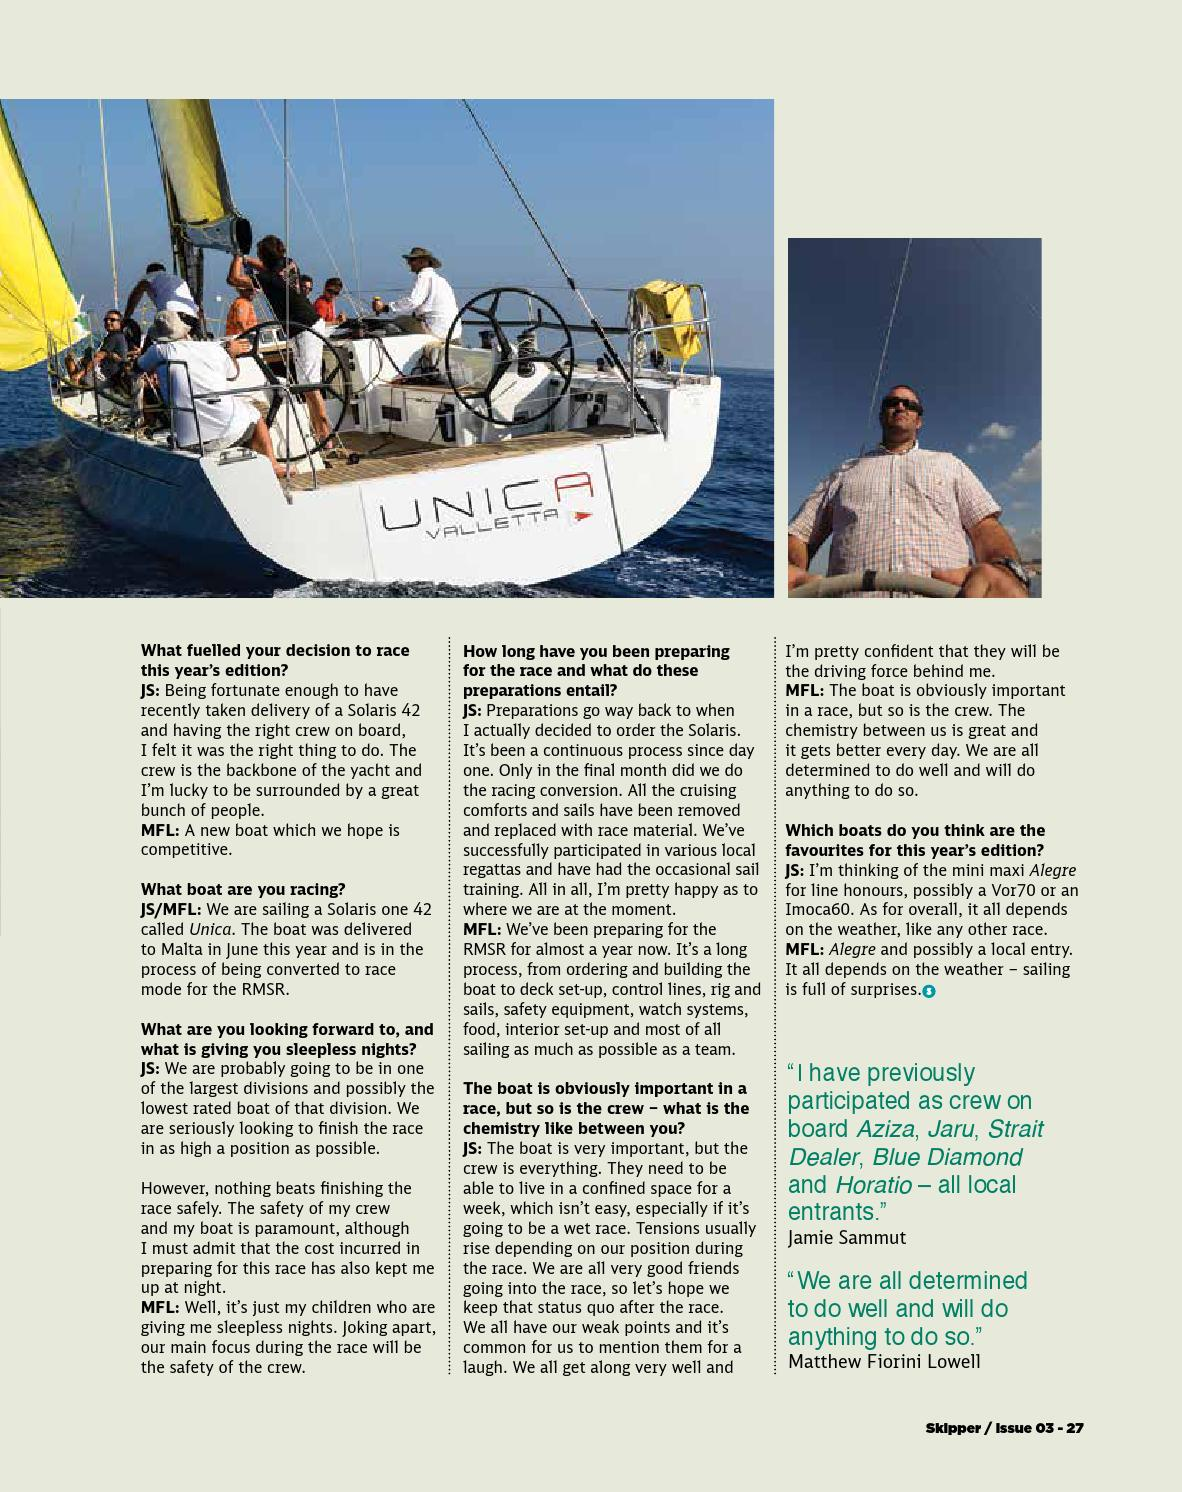 SKIPPER OCTOBER 2013 ISSUE 3 by Be Communications - issuu